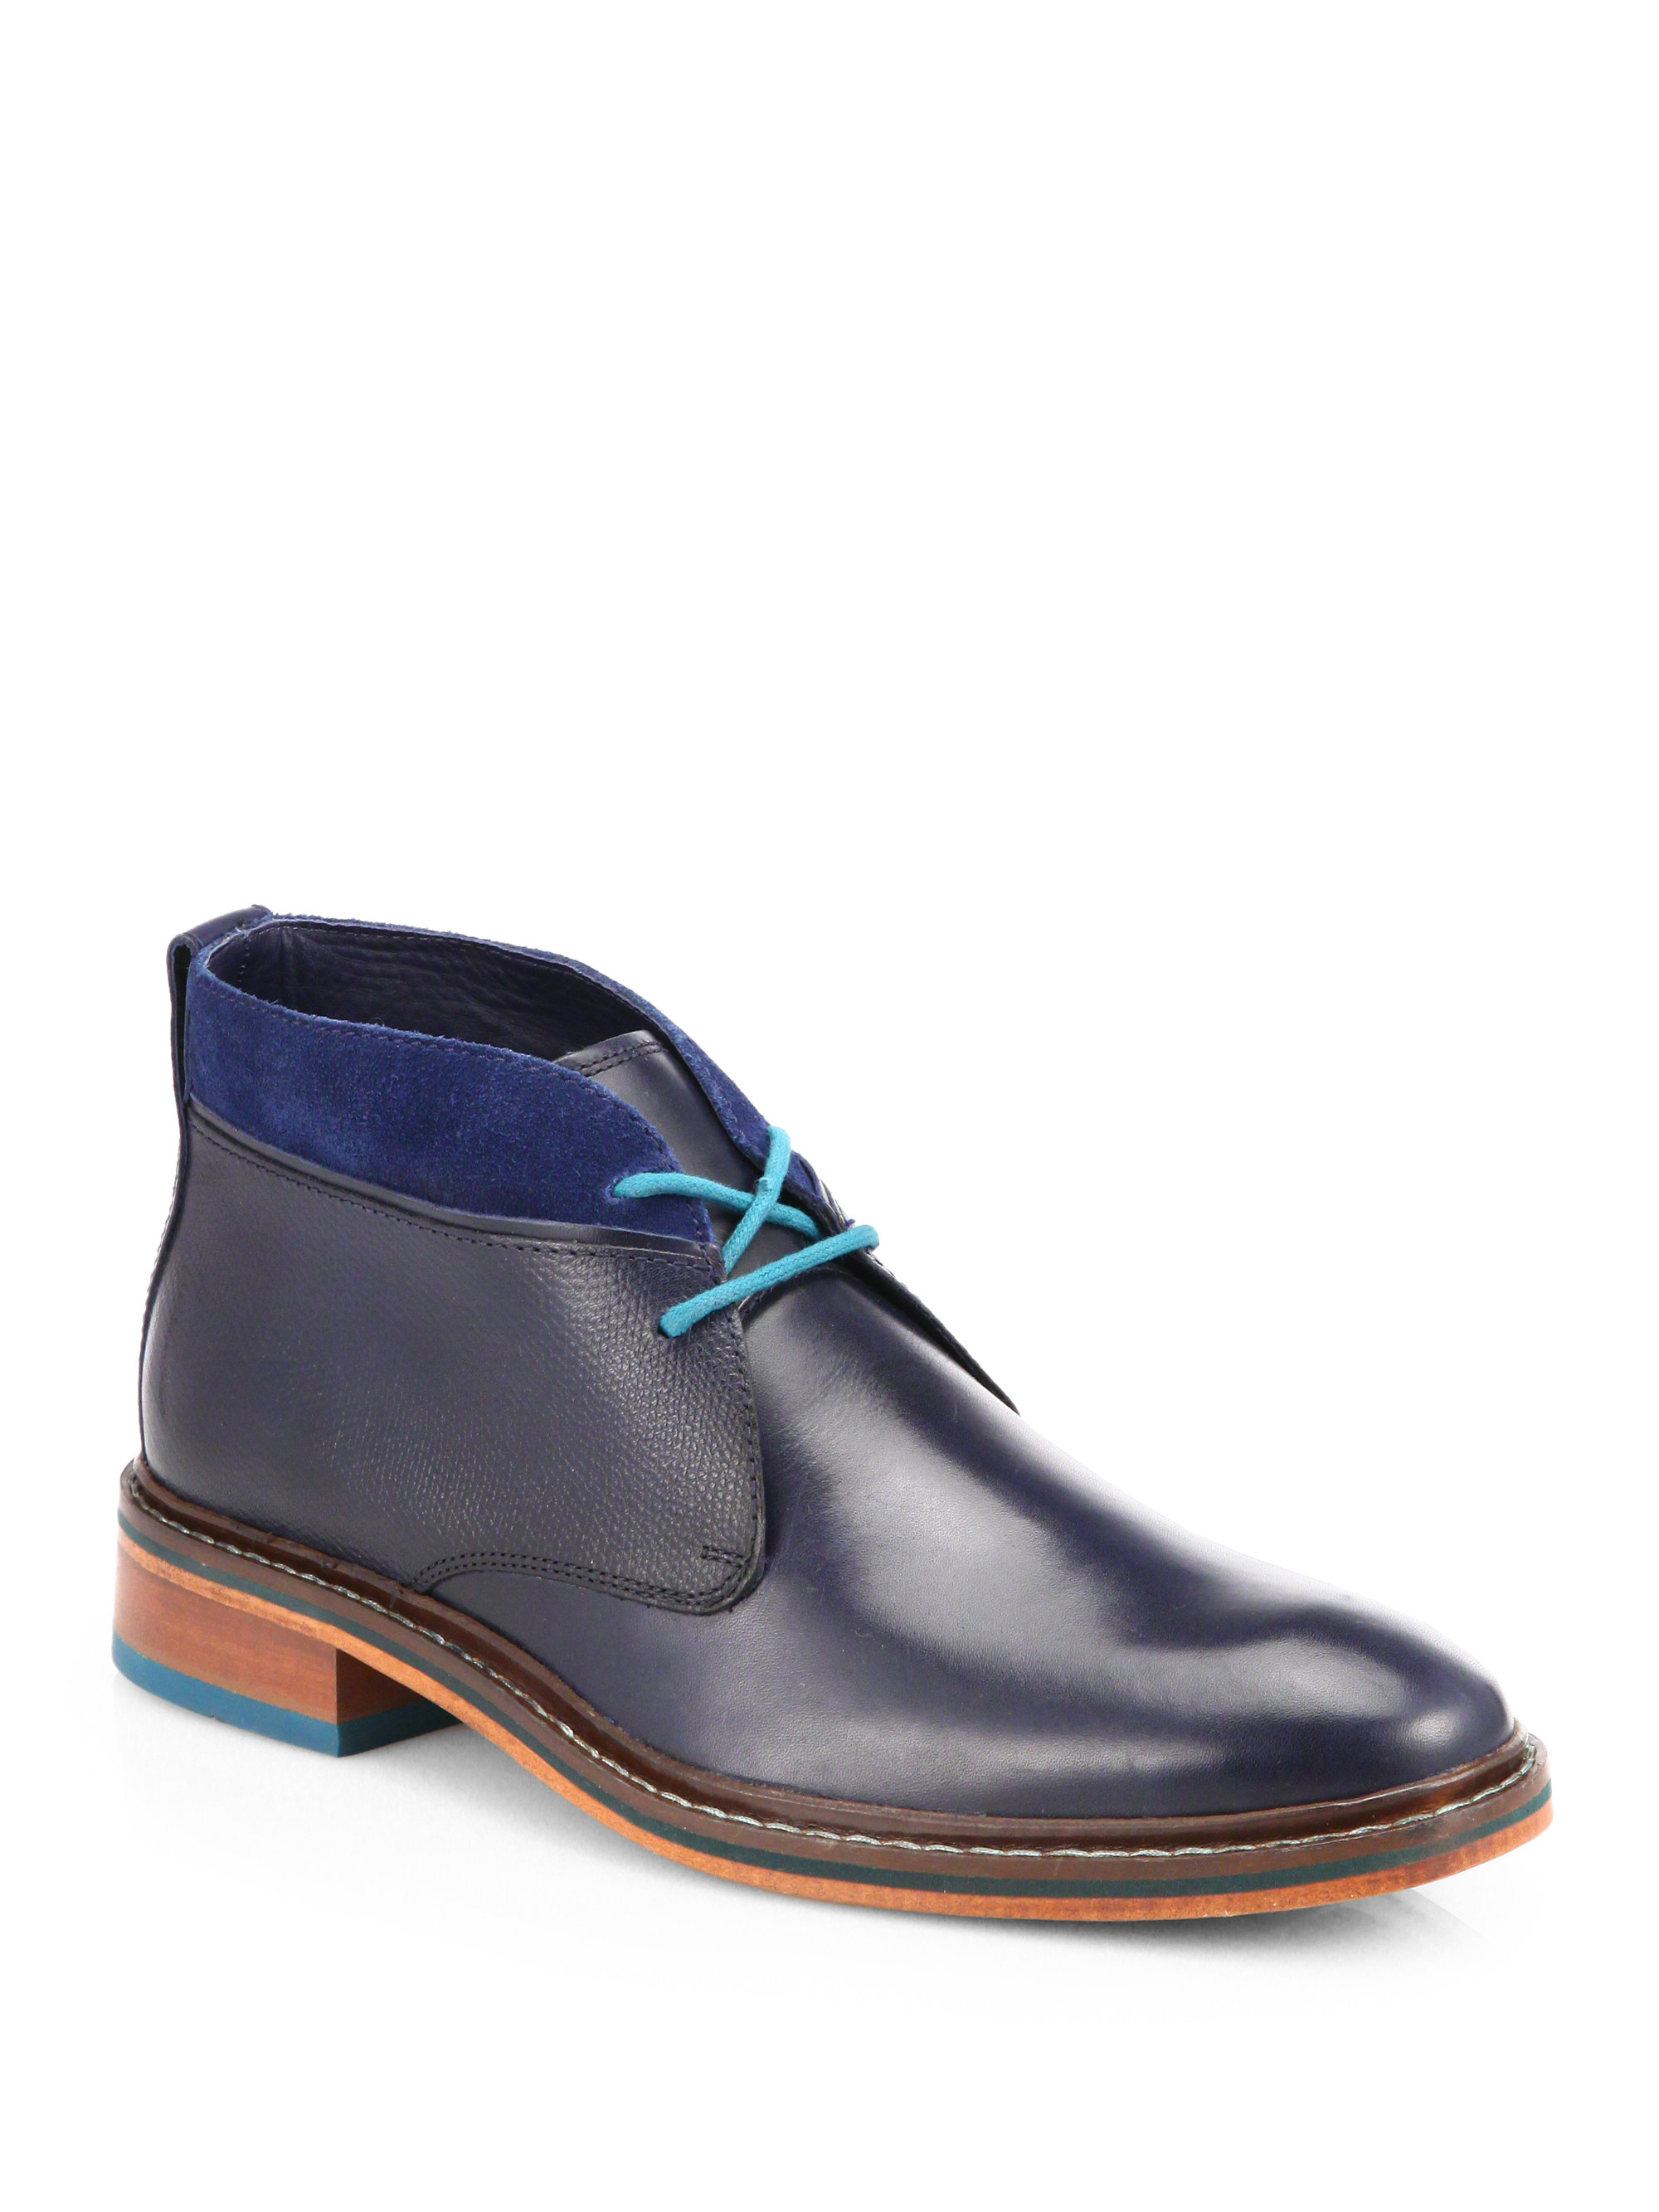 Cole Haan Colton Winter Chukka Boots In Blue For Men Navy